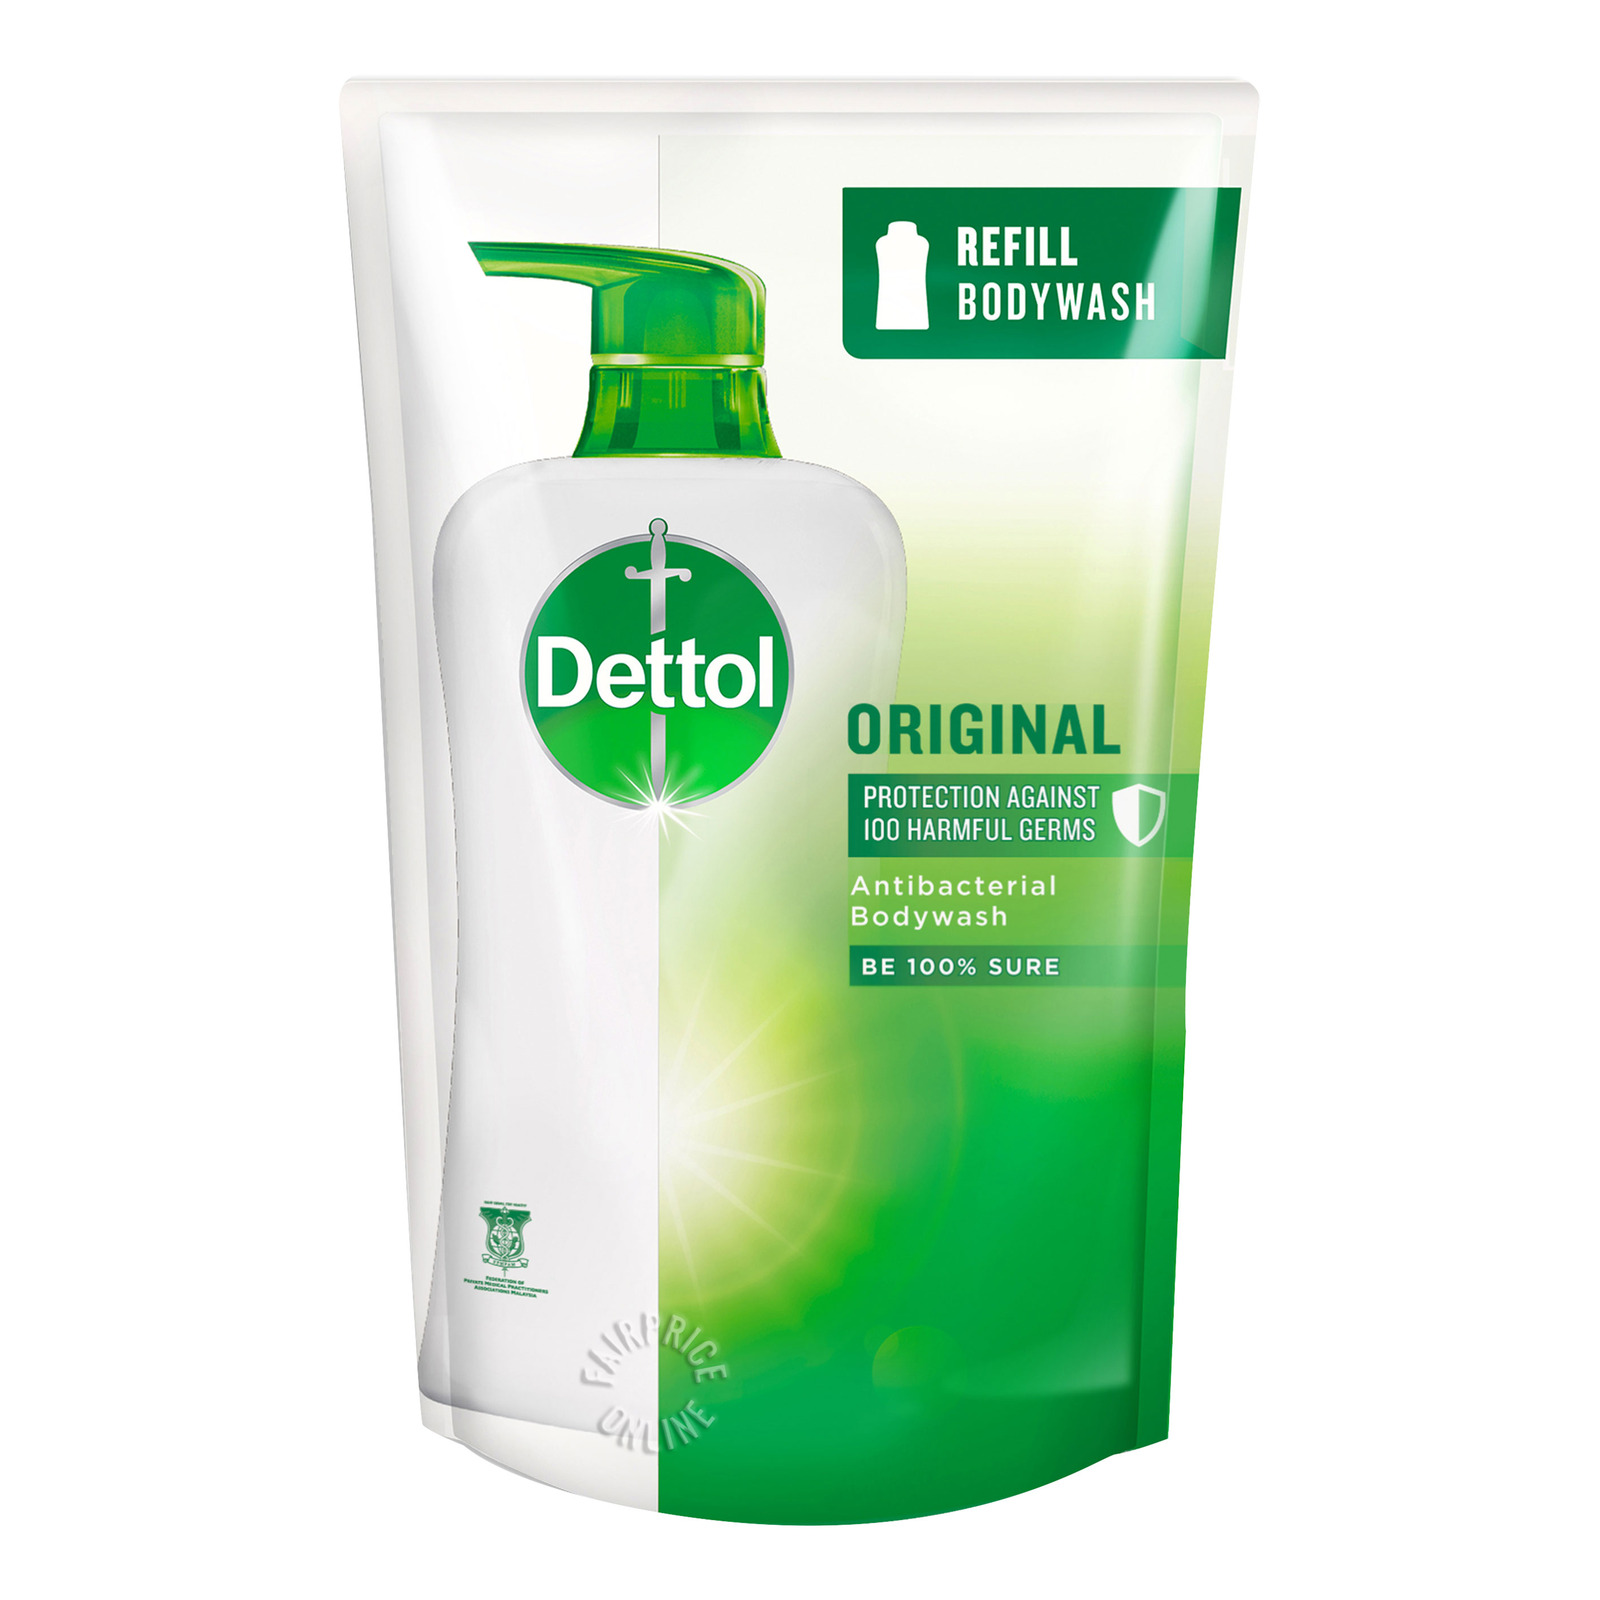 Dettol Anti-Bacterial pH-Balanced Body Wash Refill - Original